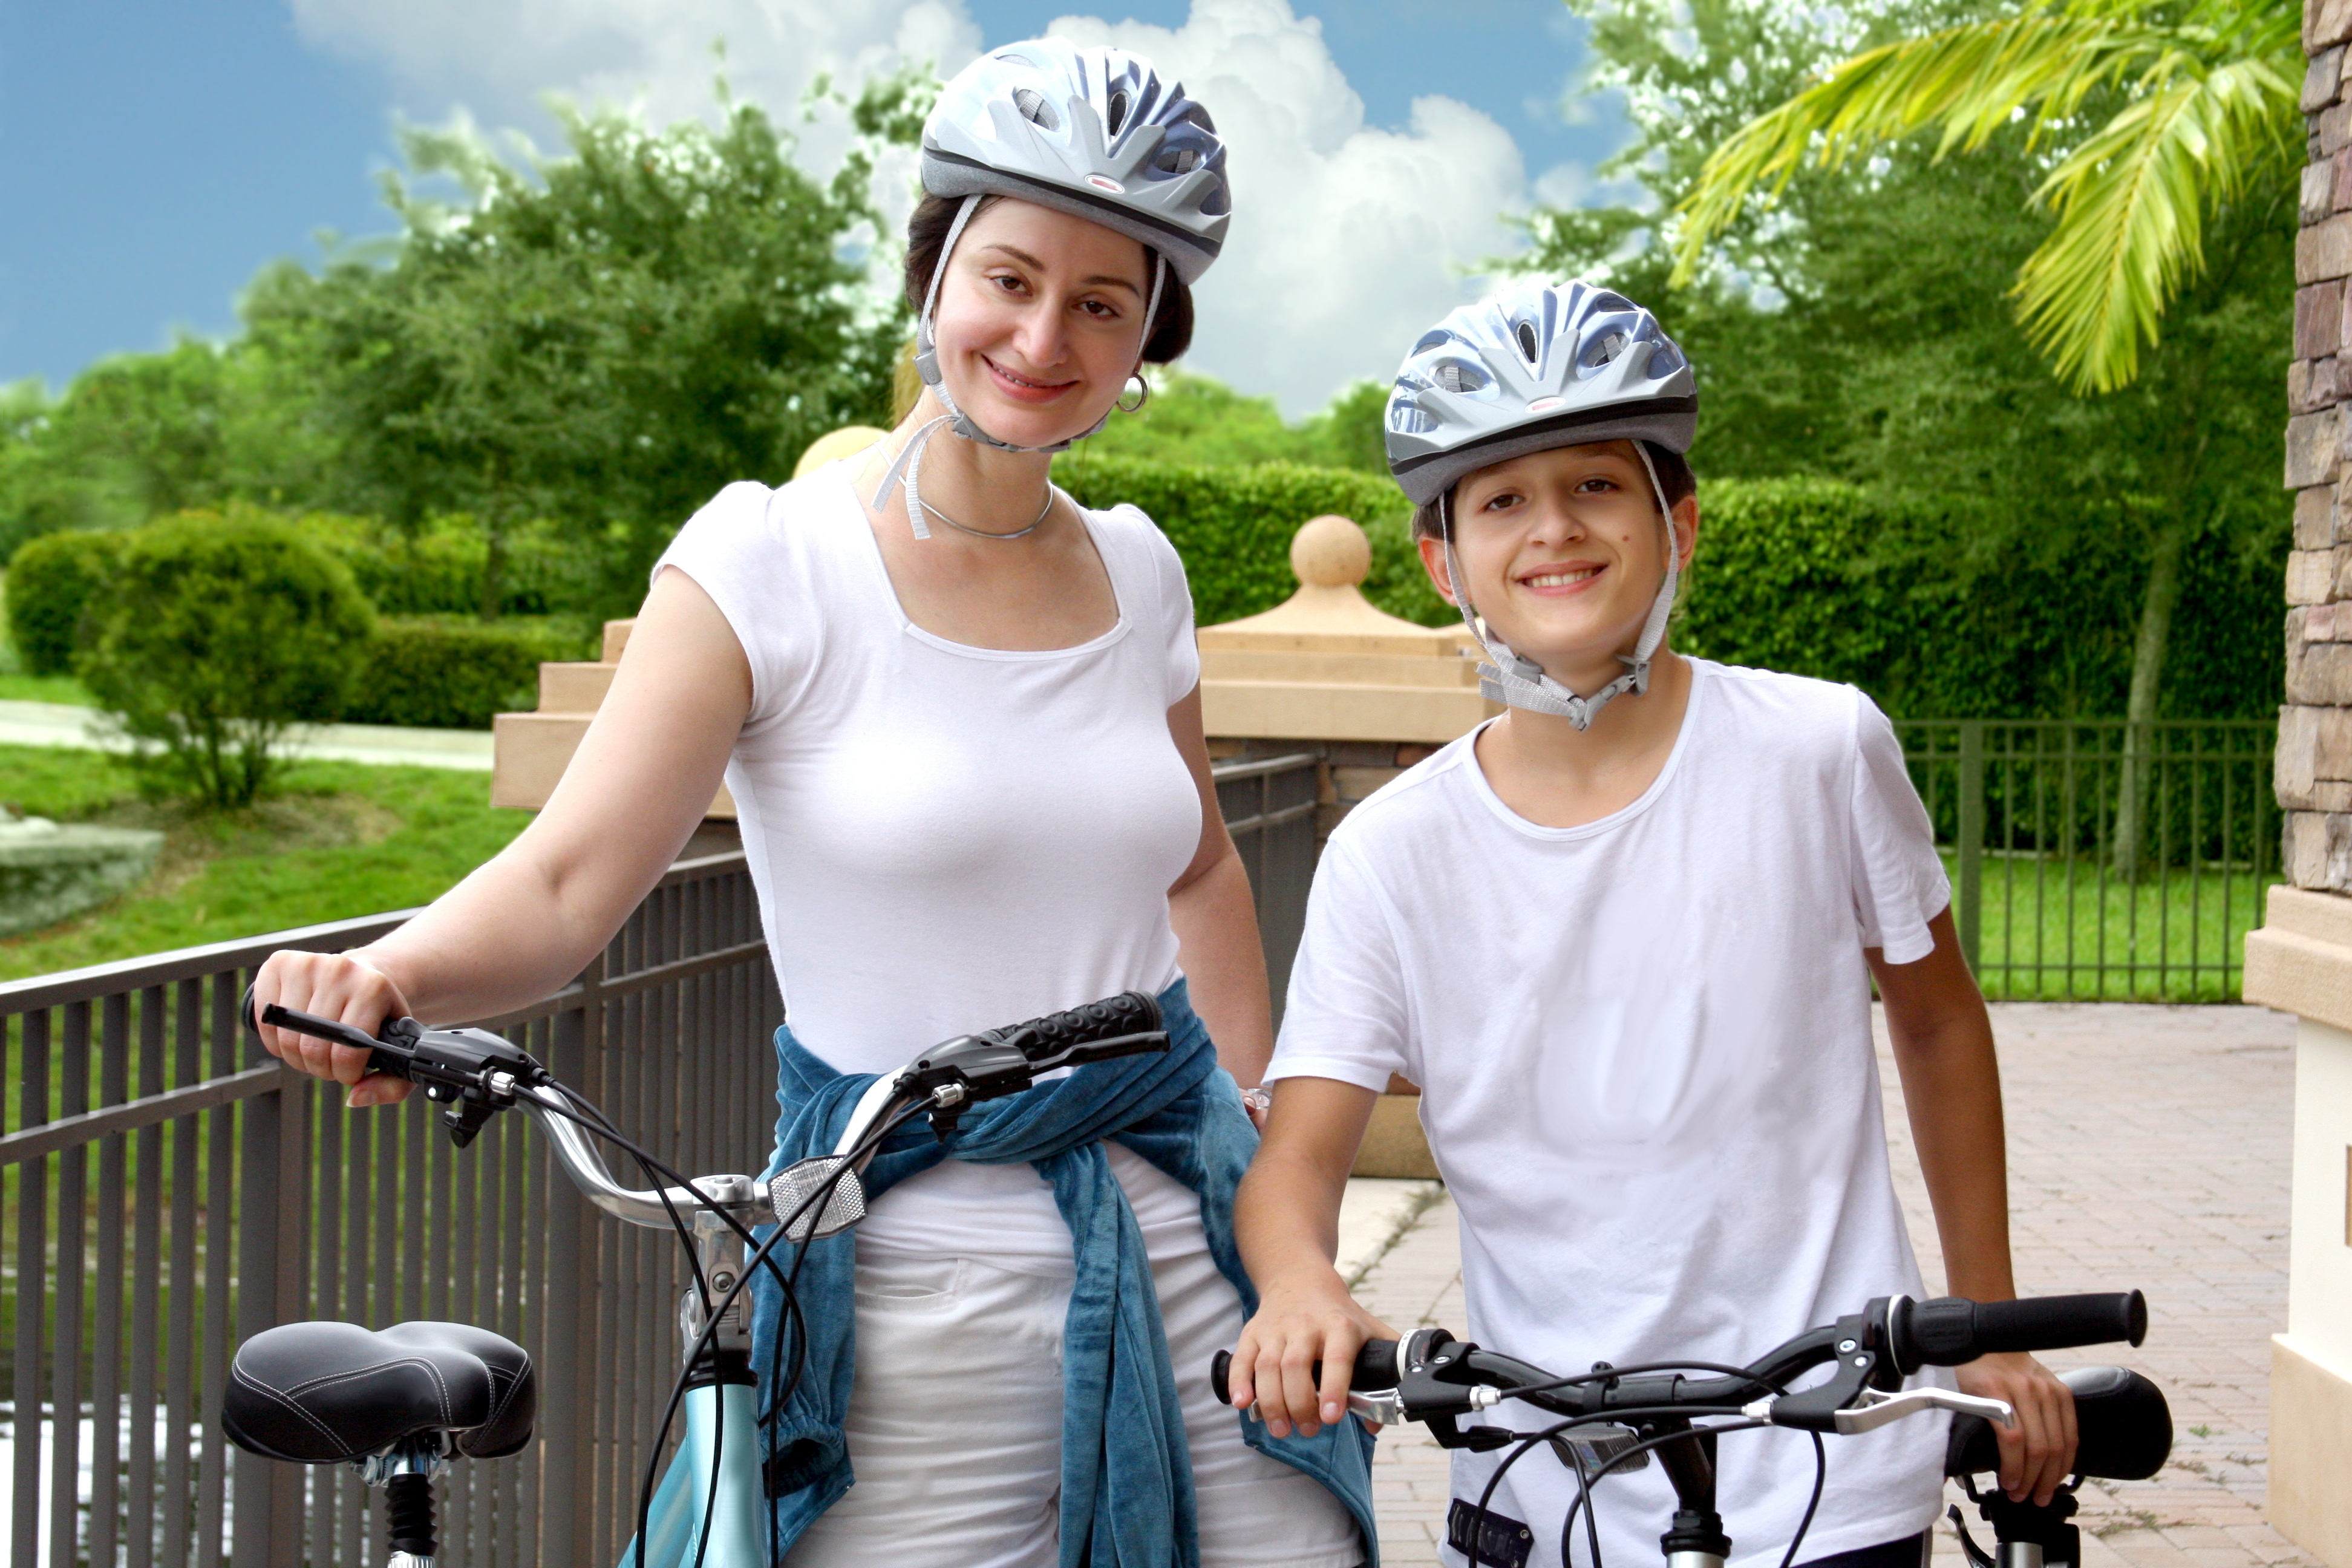 Bicycle Helmets Product Safety Australia